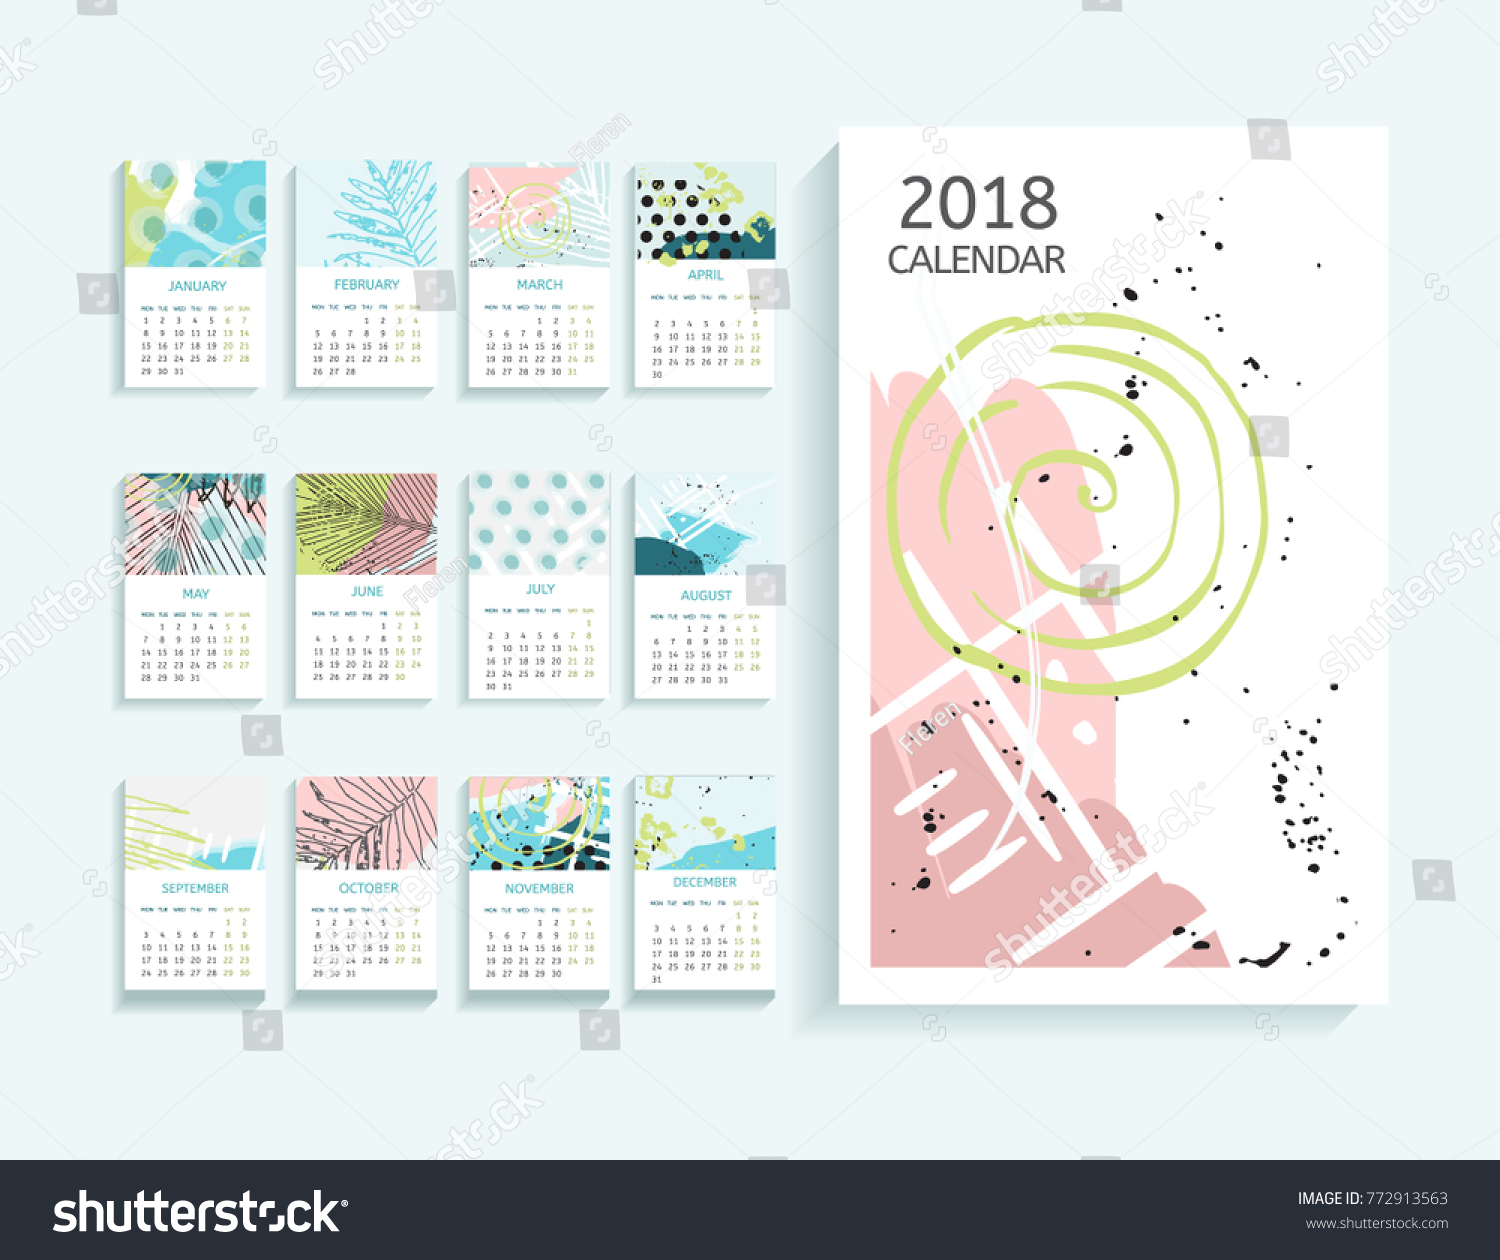 Calendar Abstract Art : Calendar abstract modern art monthly stock vector